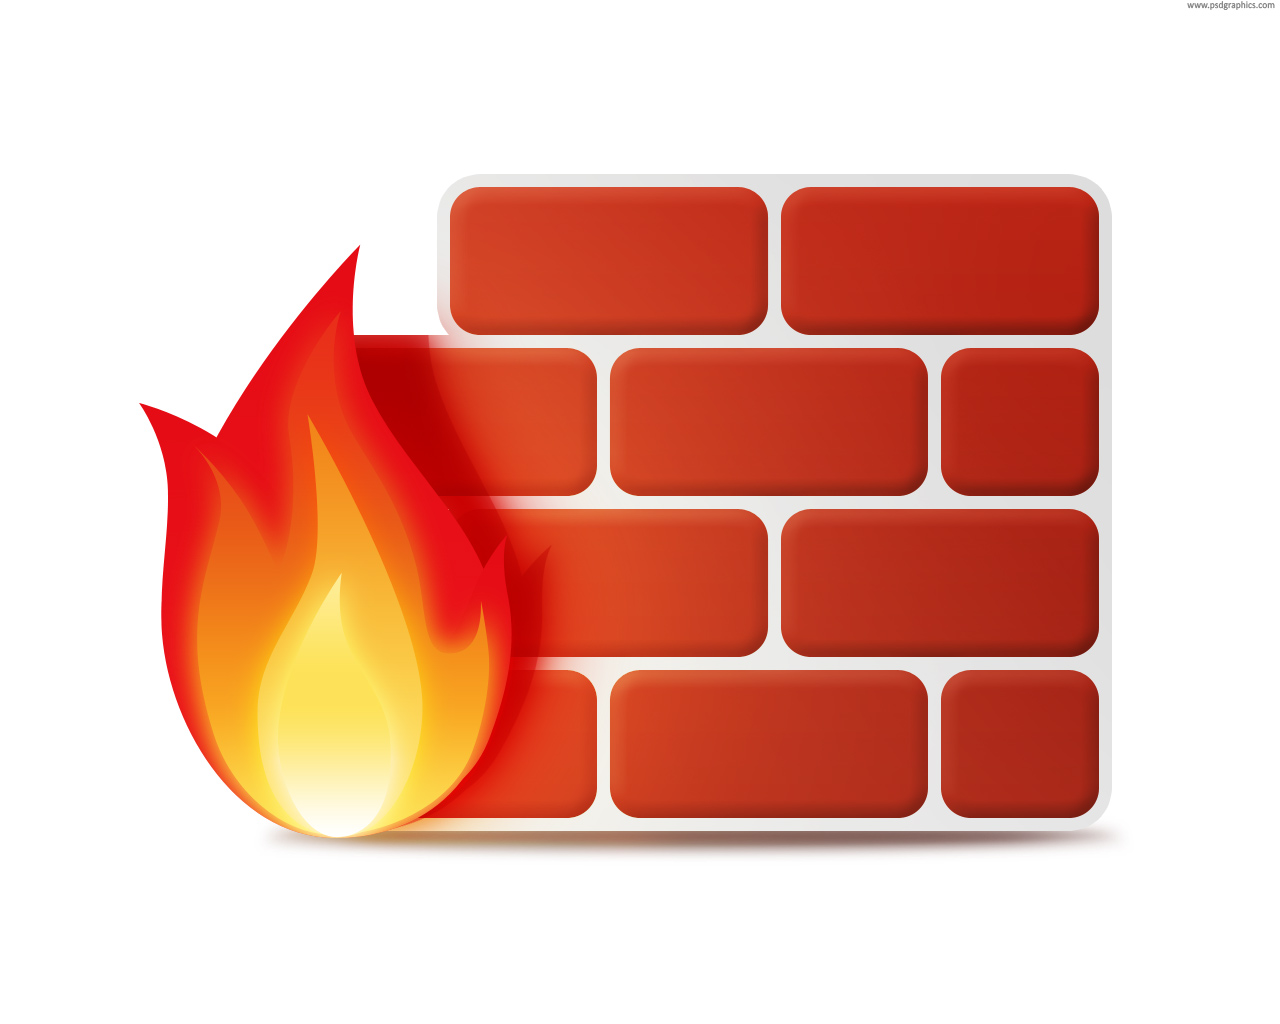 13 Firewall Computer Icons Symbols Images